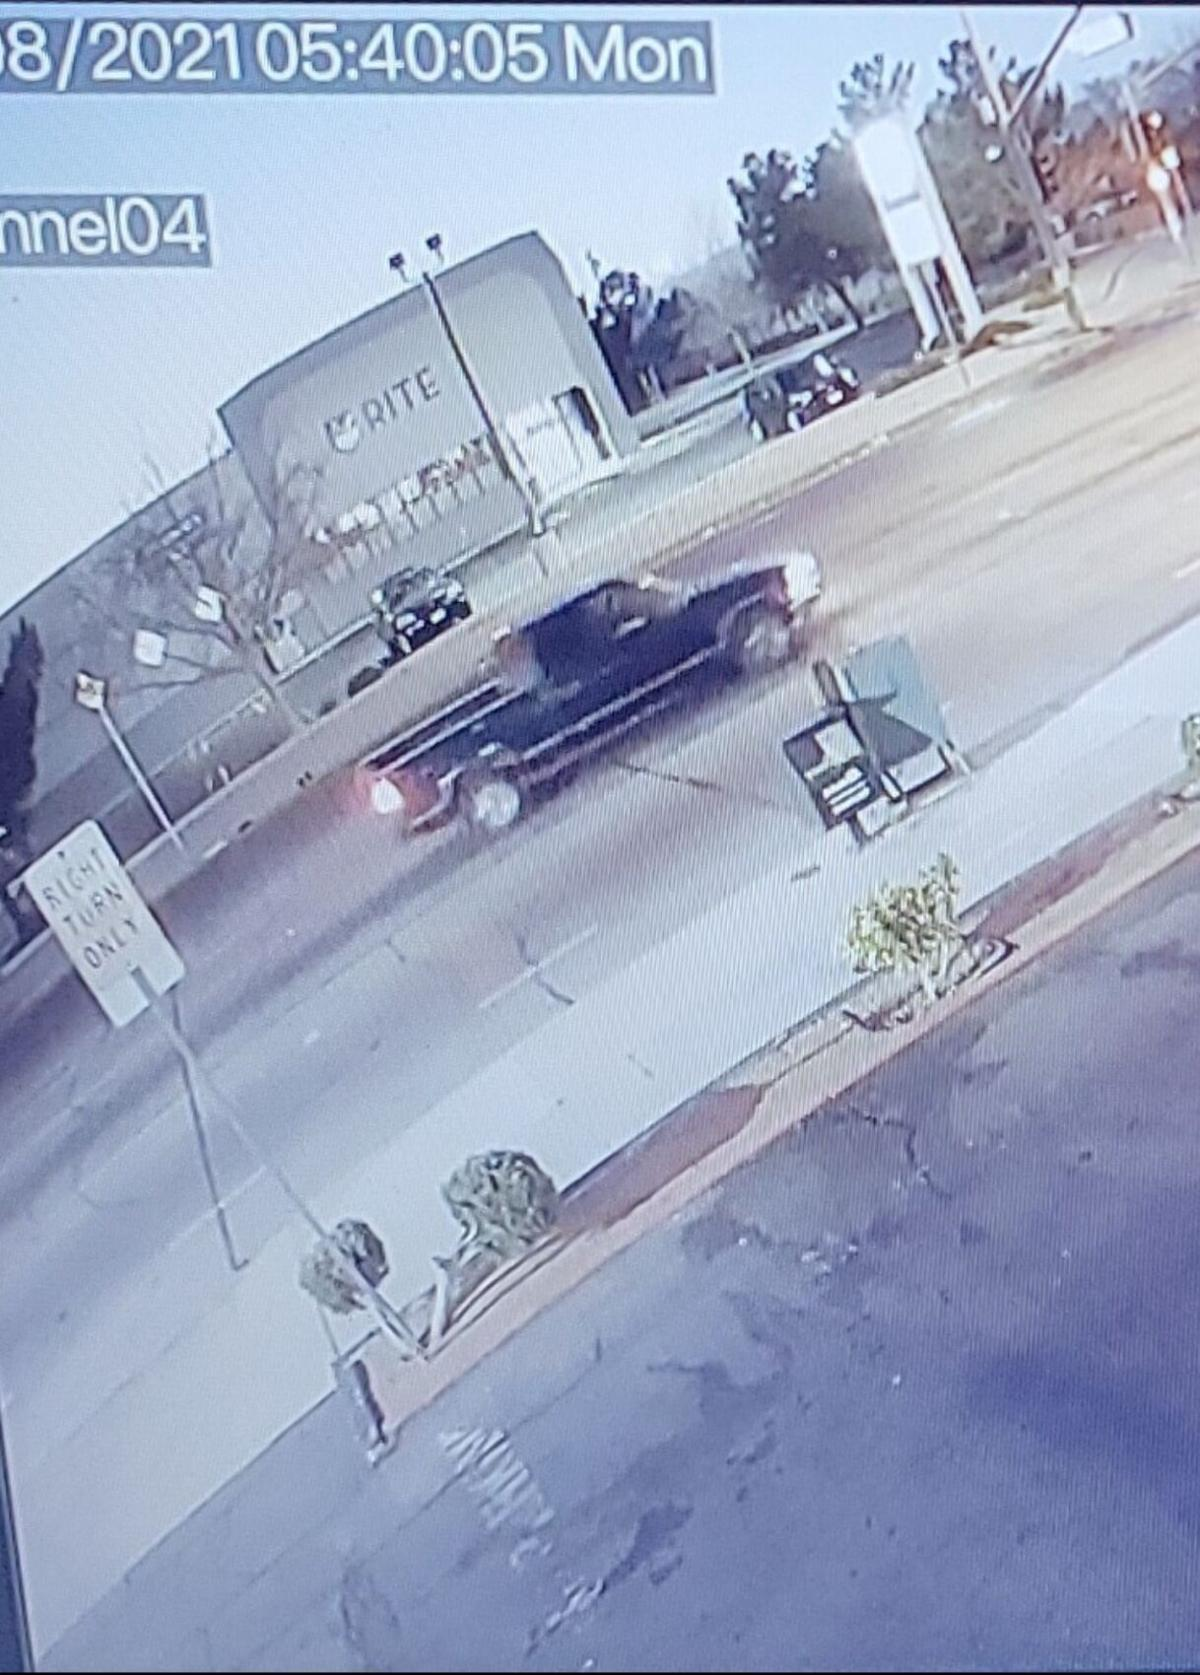 PHOTO - Truck on 7th Street - Fatal hit and run